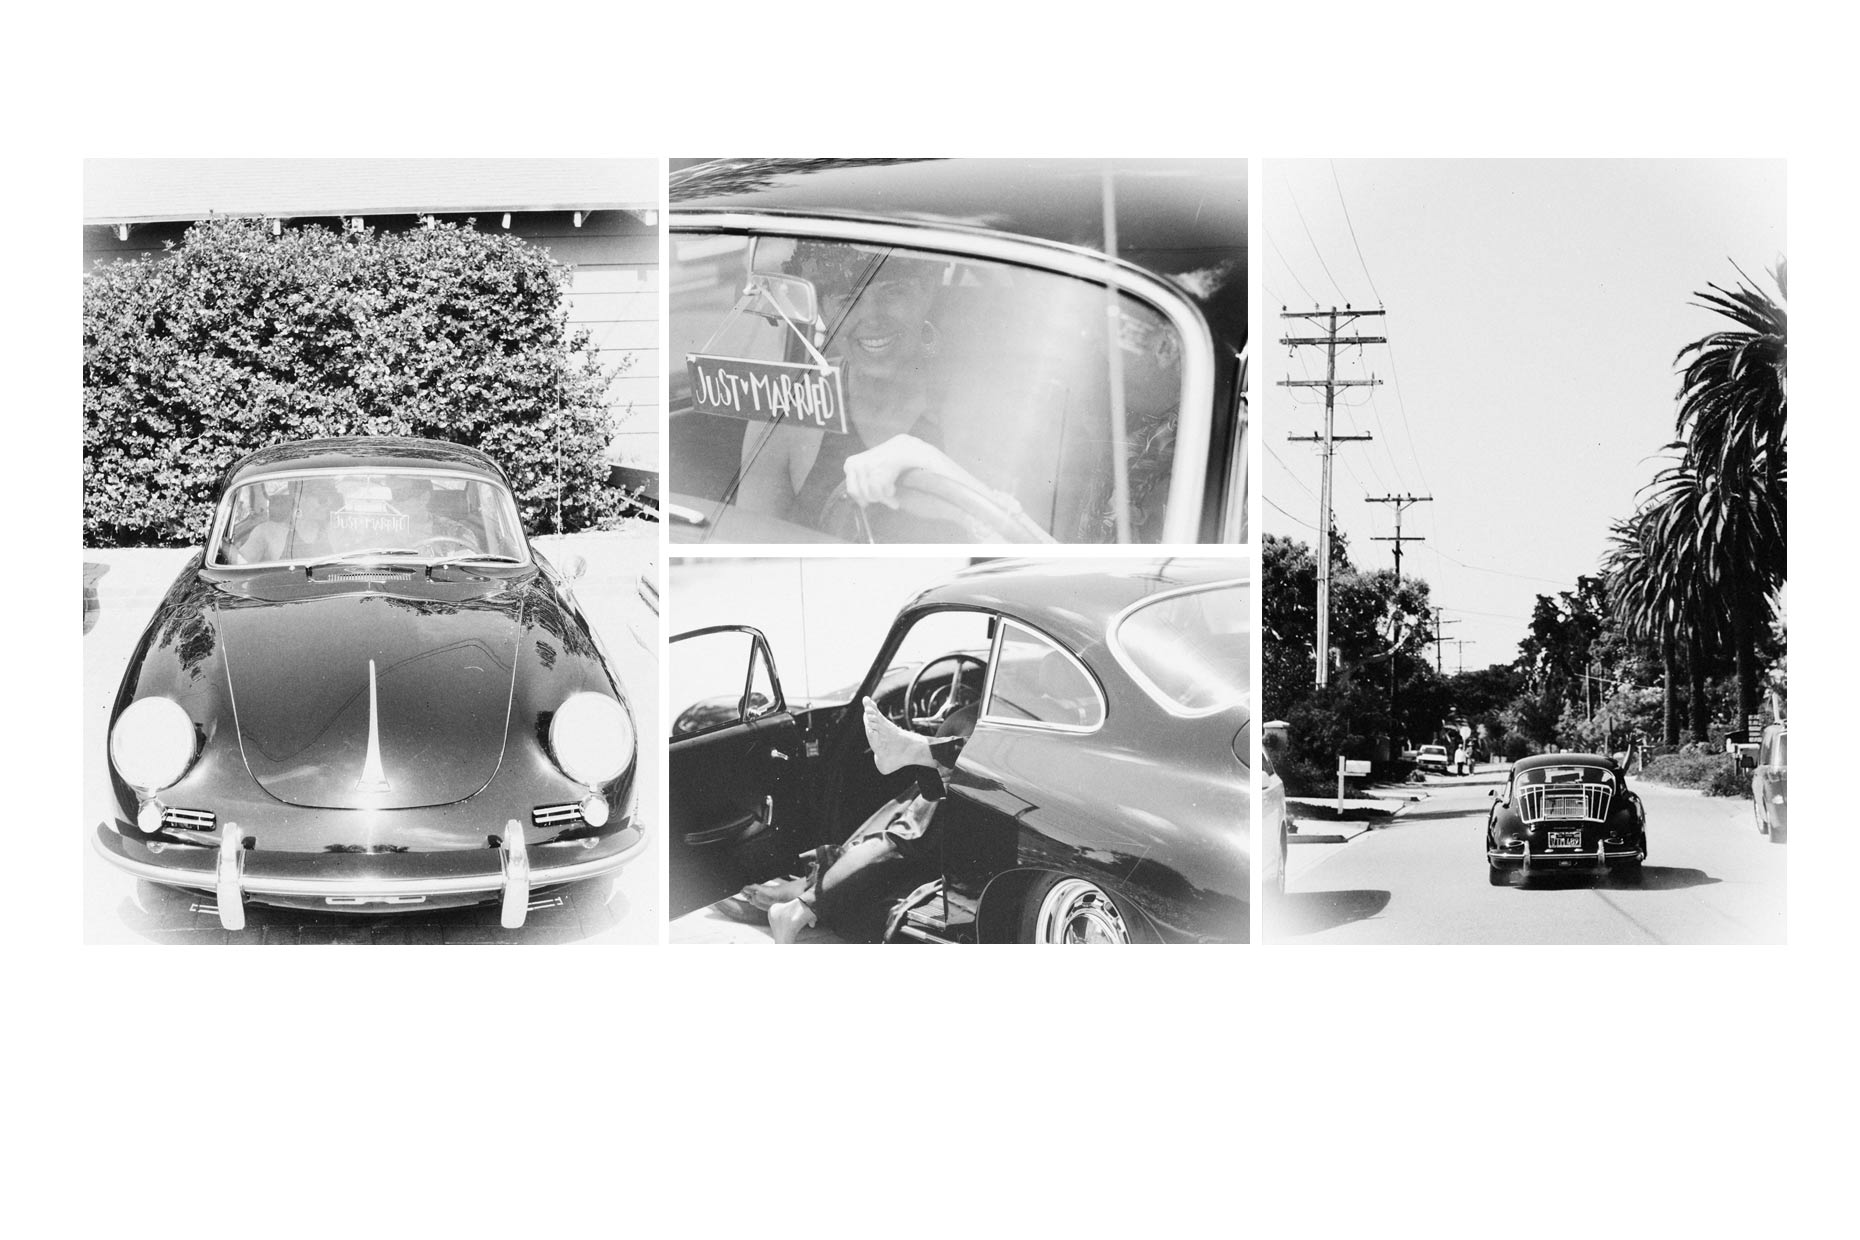 Ojai valley inn wedding photographer 29-Pierre-olivier-Photography-car